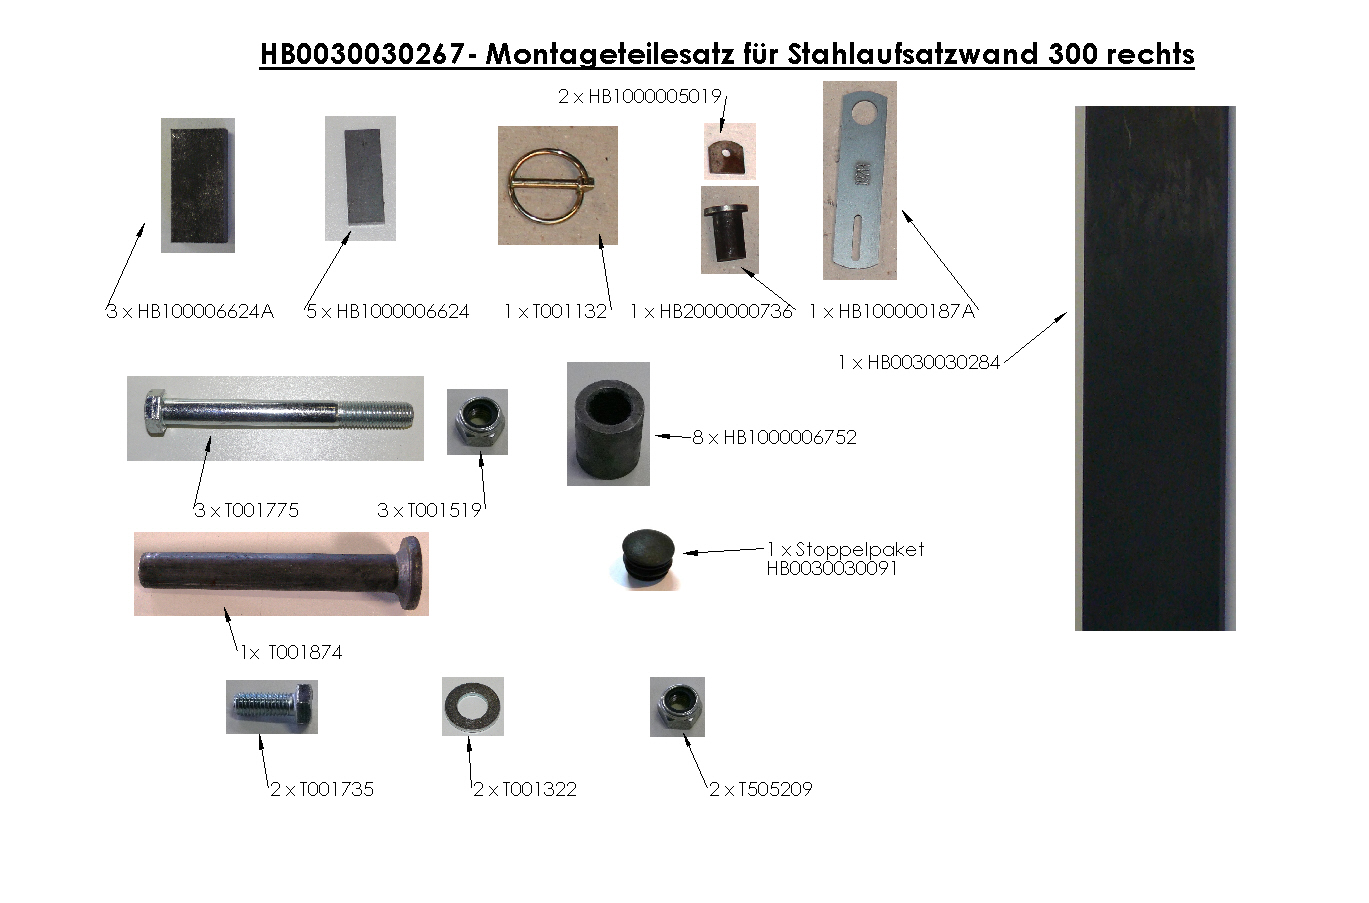 Brantner Kipper und Anhänger - assembly kit for steel attachment wall 300 right